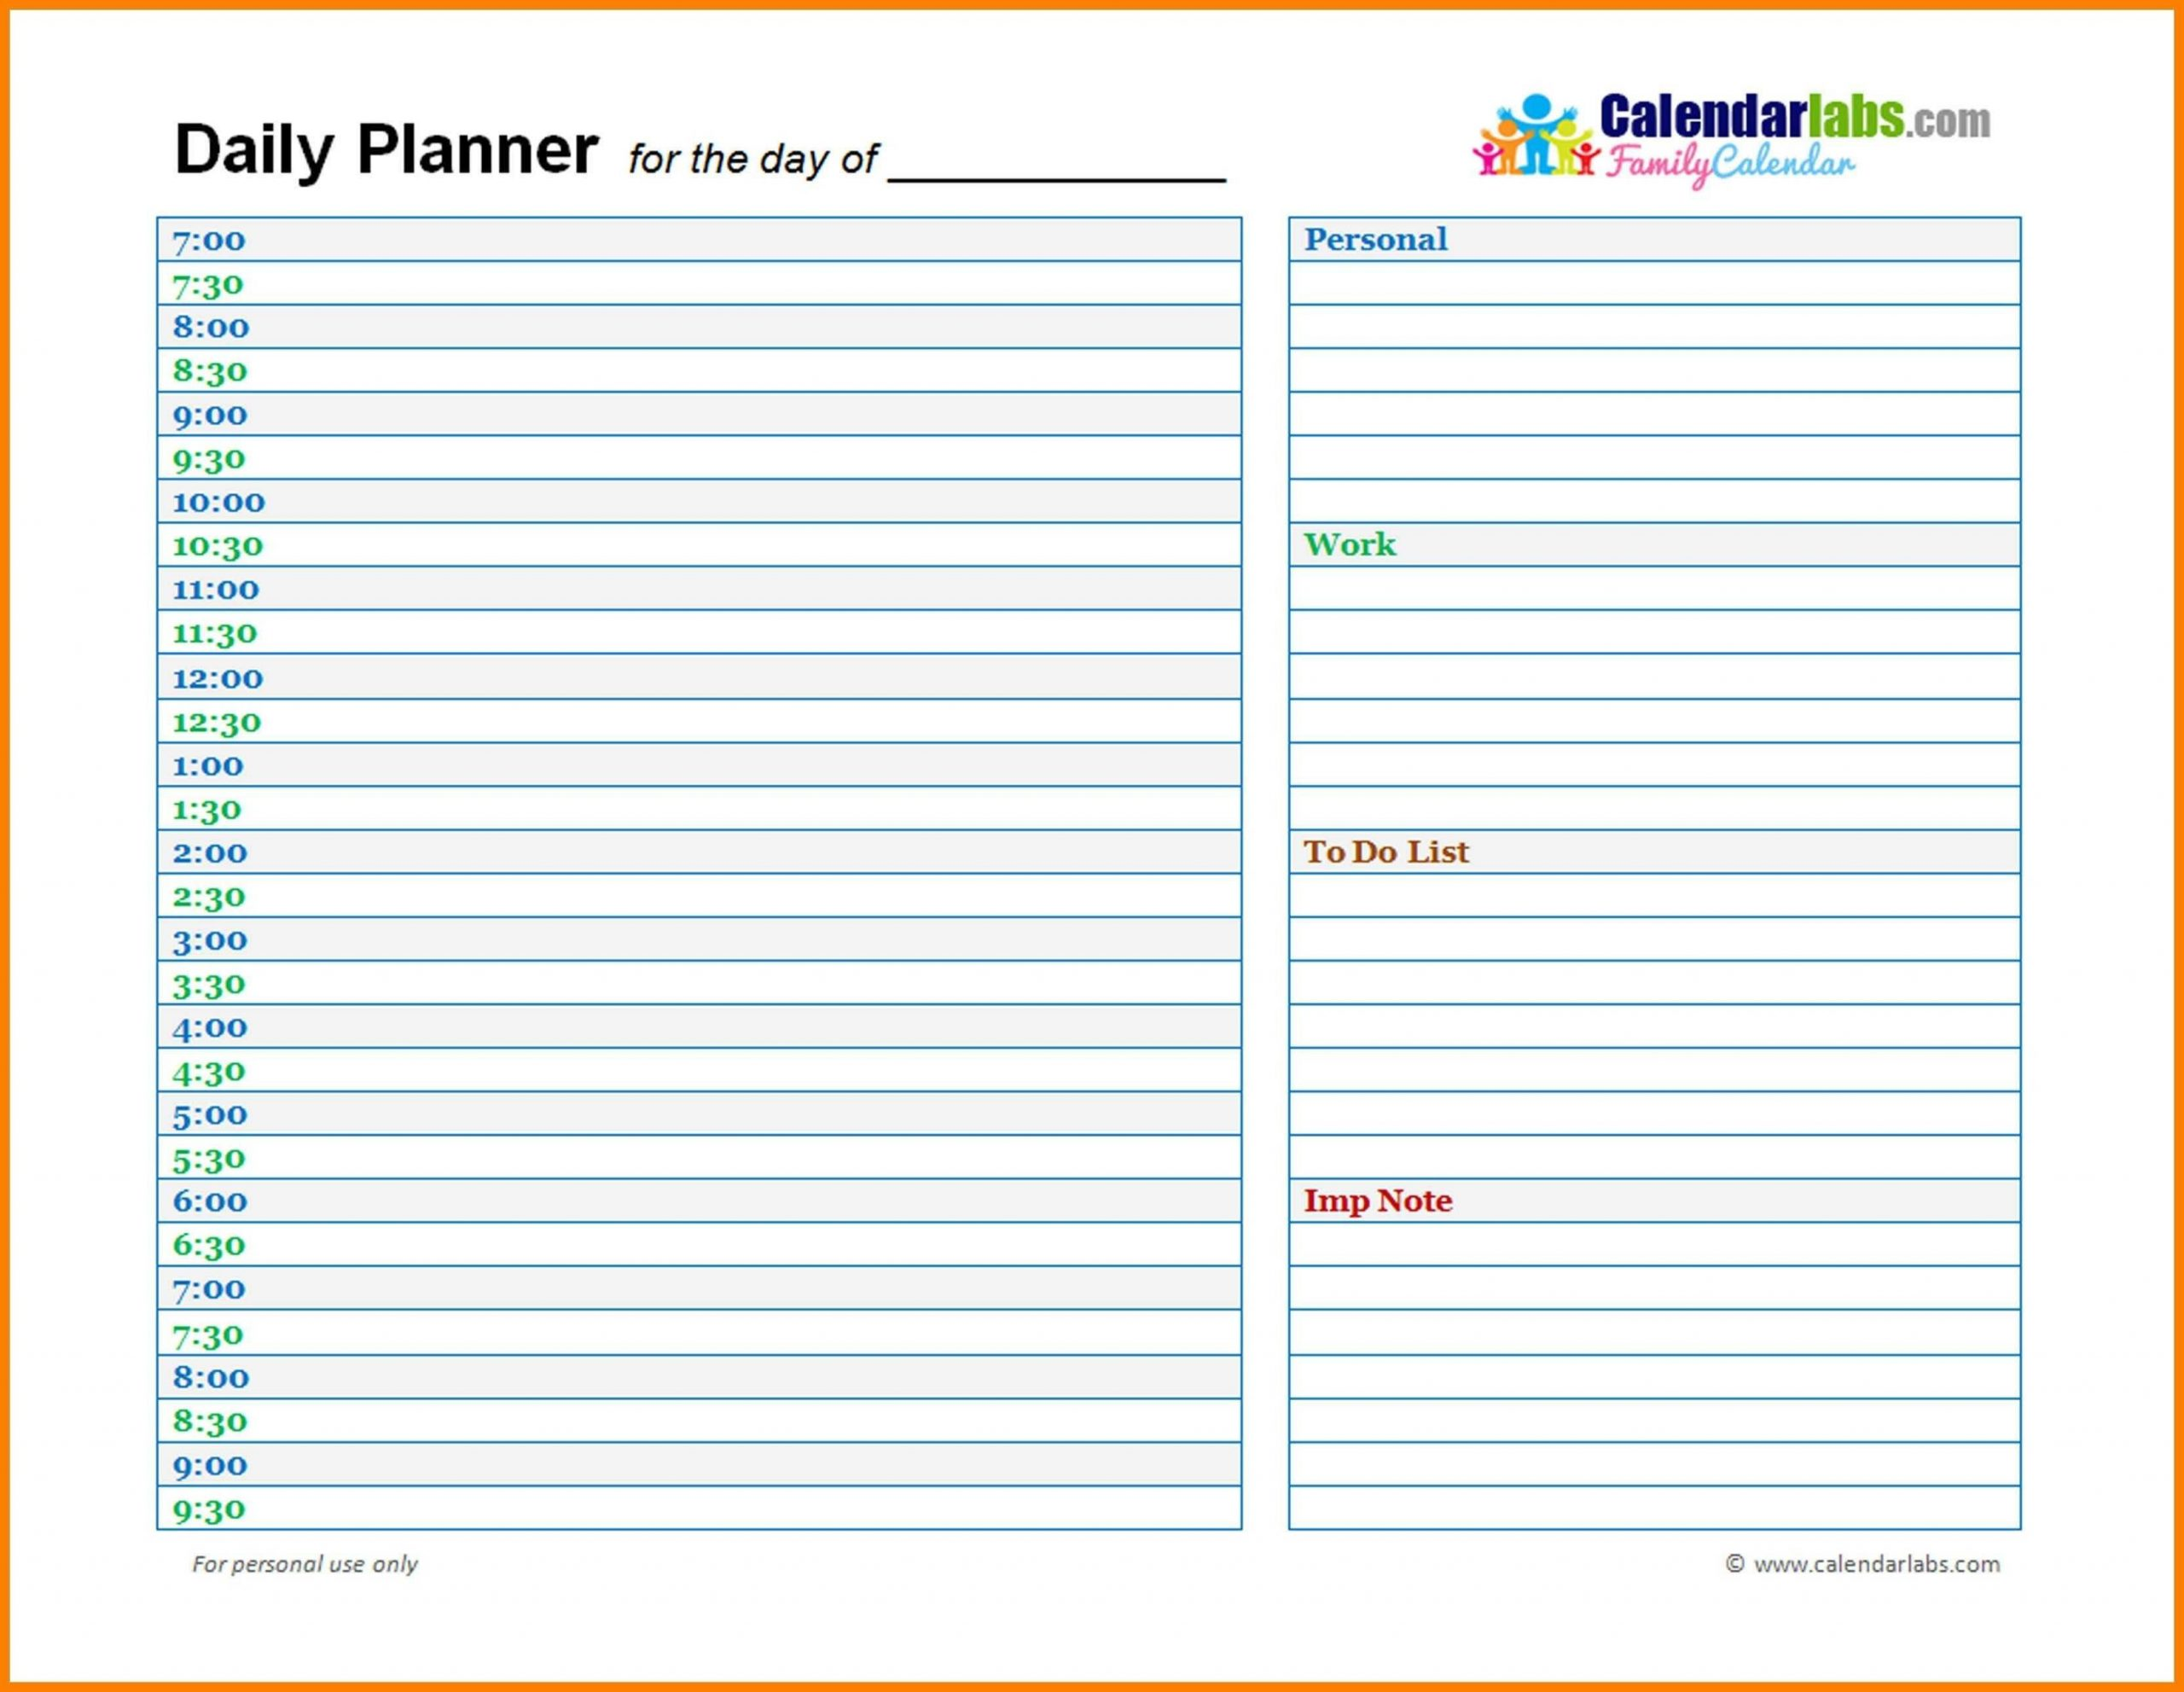 Daily Calendar Template Onenote – Cards Design Templates One Note Track In Calandar Format